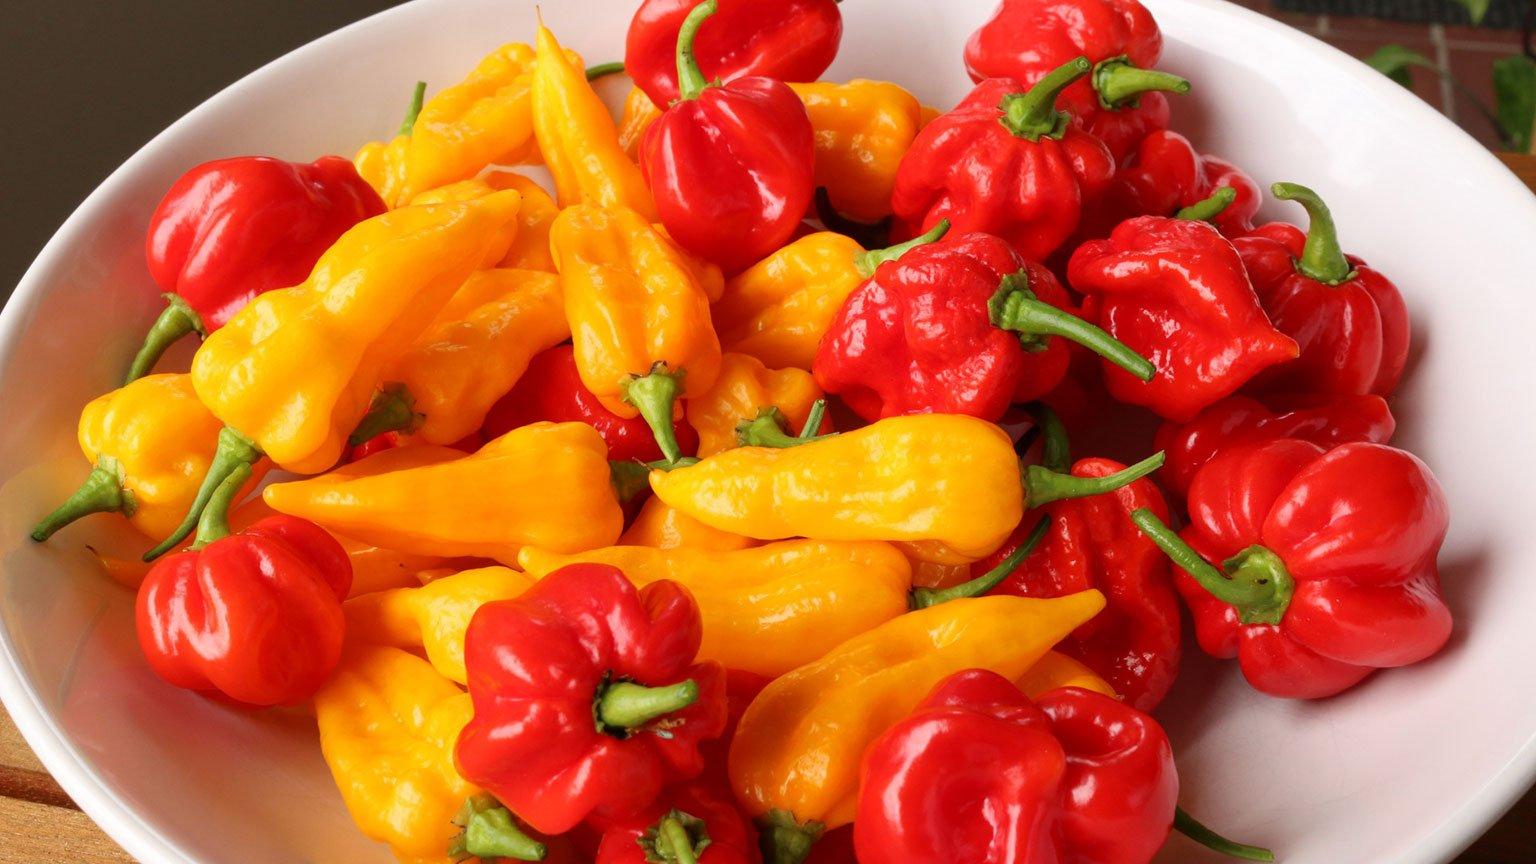 The World of Food: Hot and Spicy